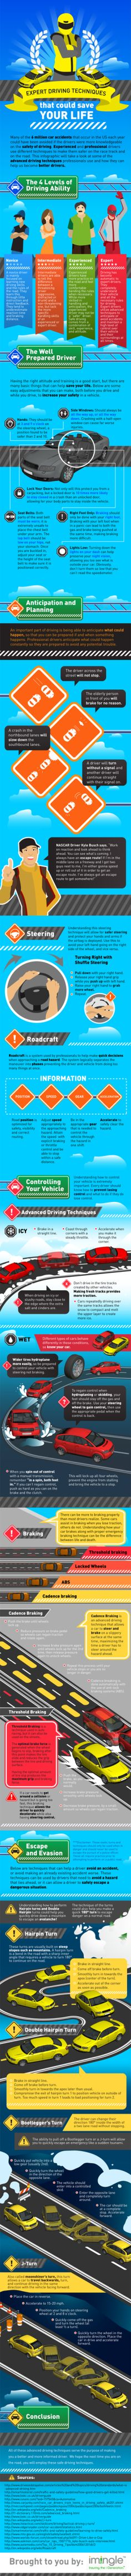 96 best Driving Safety images on Pinterest | Driving safety, Road ...